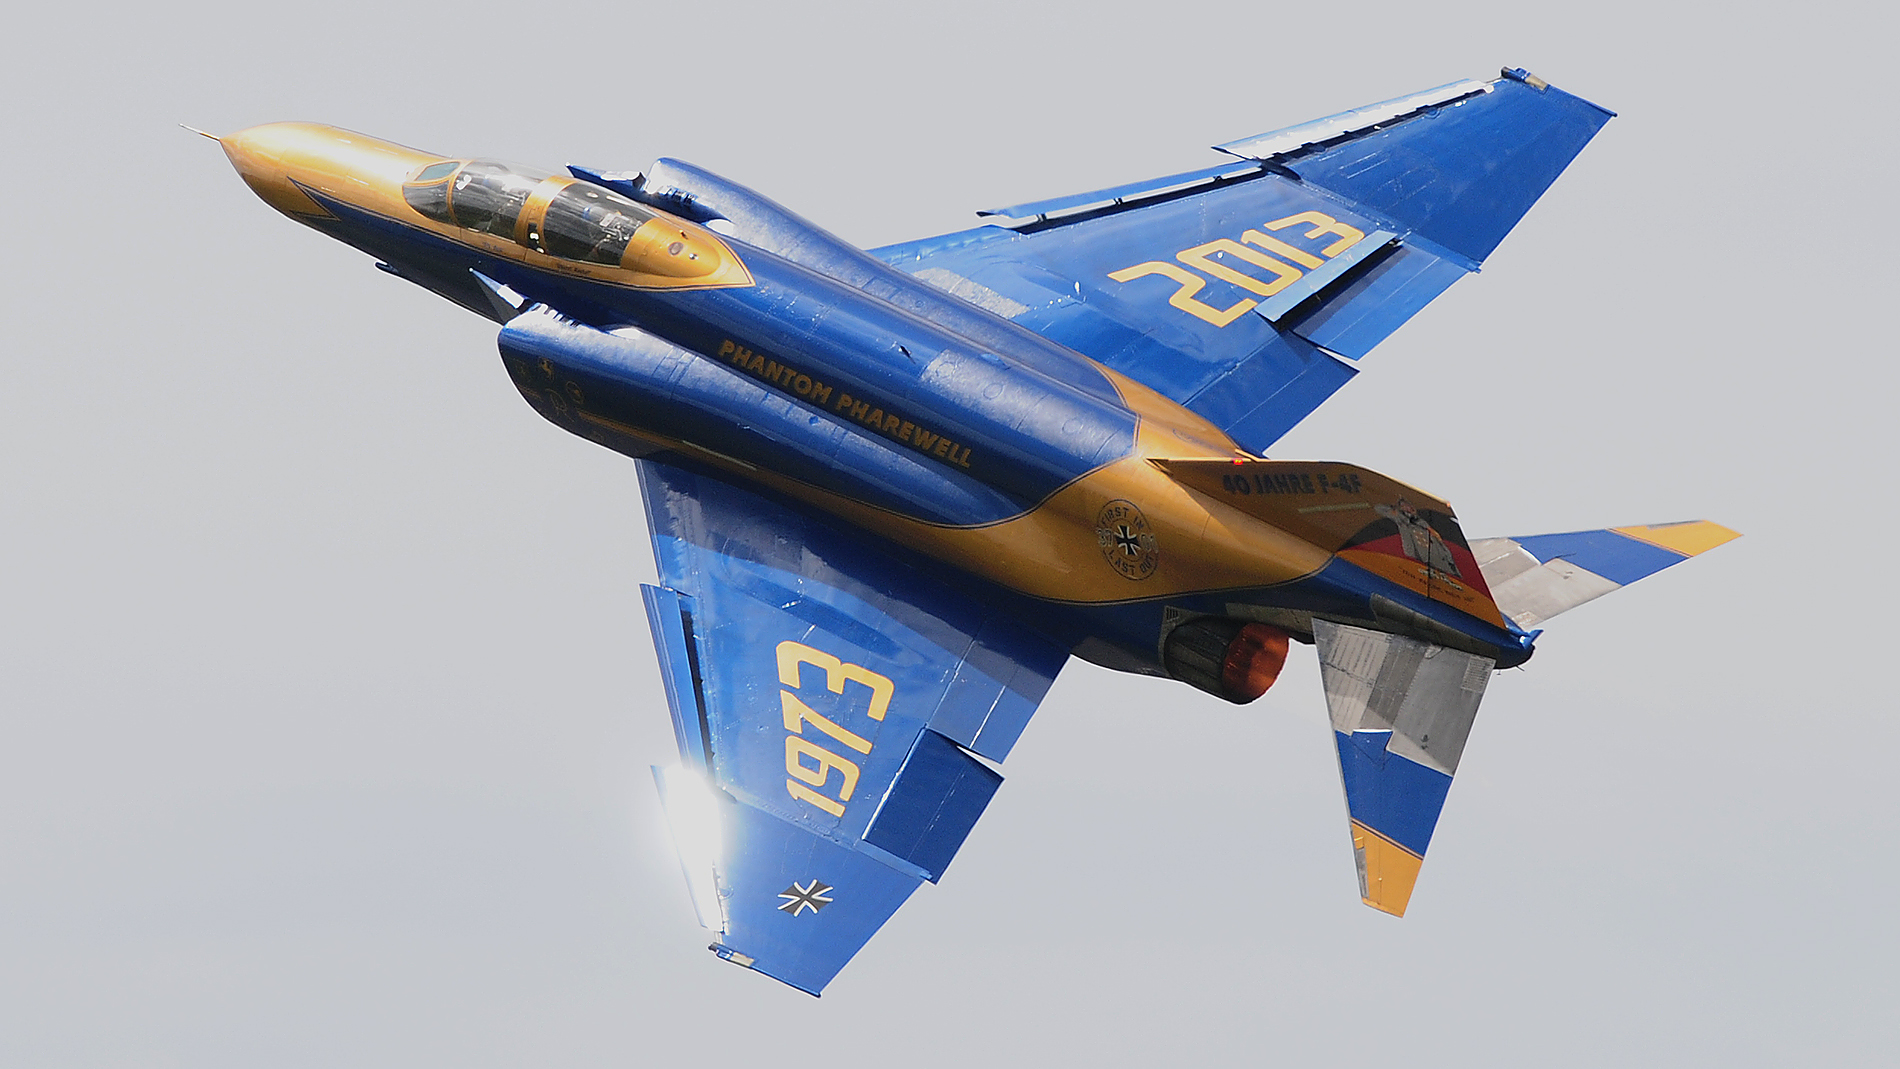 37+01 Fly Out Maschine in Wittmund